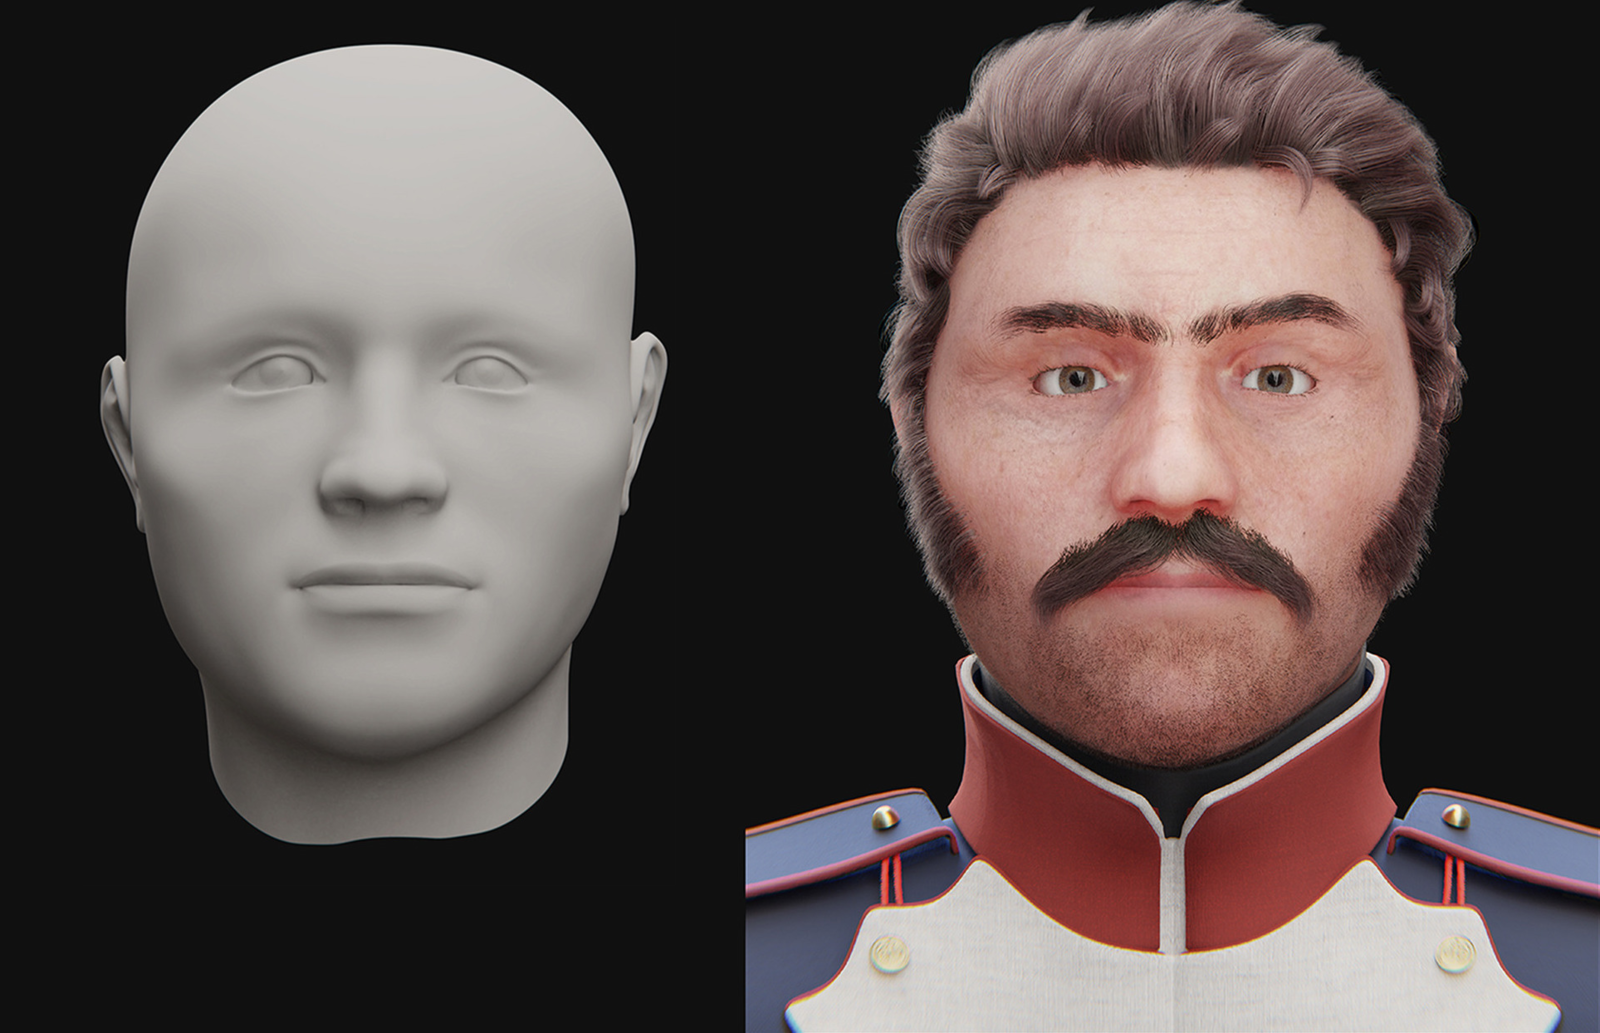 Facial reconstruction of the soldier.